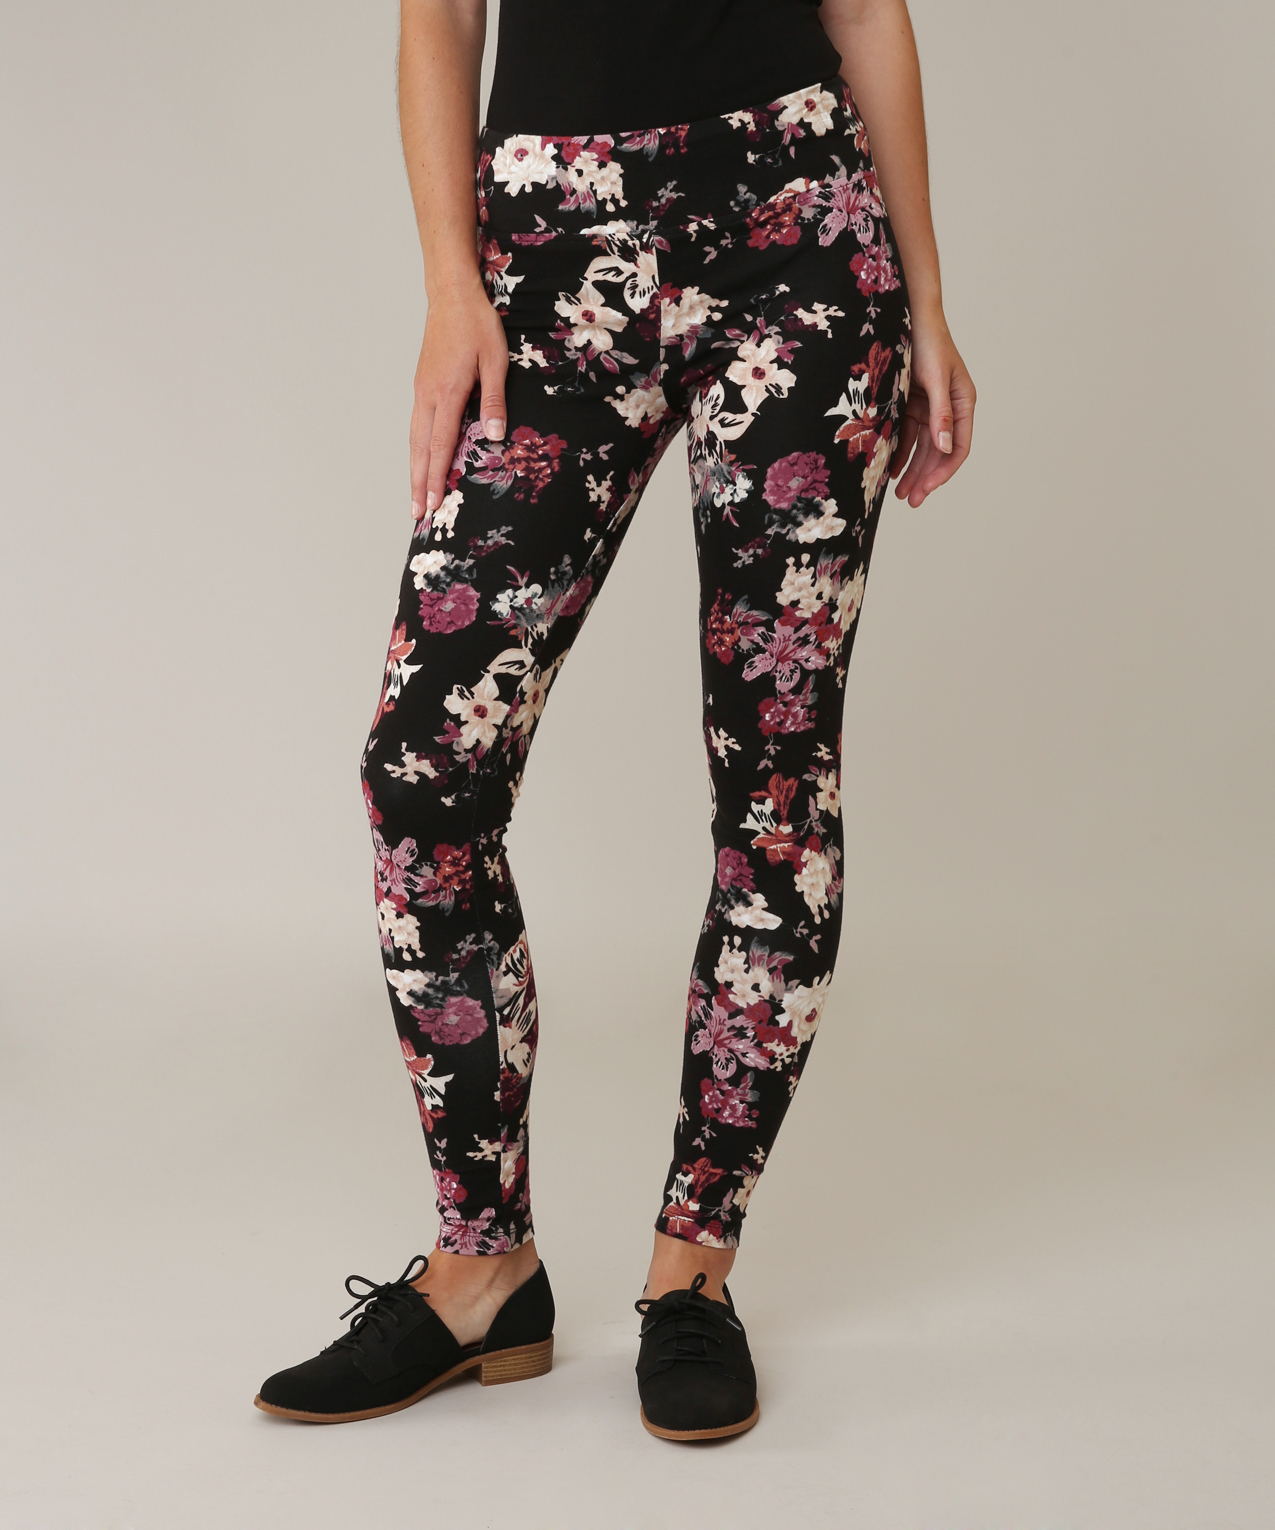 High waisted and eye catching, the Floral Legging from Beach Riot features a v-shaped waistband so your curves really pop.